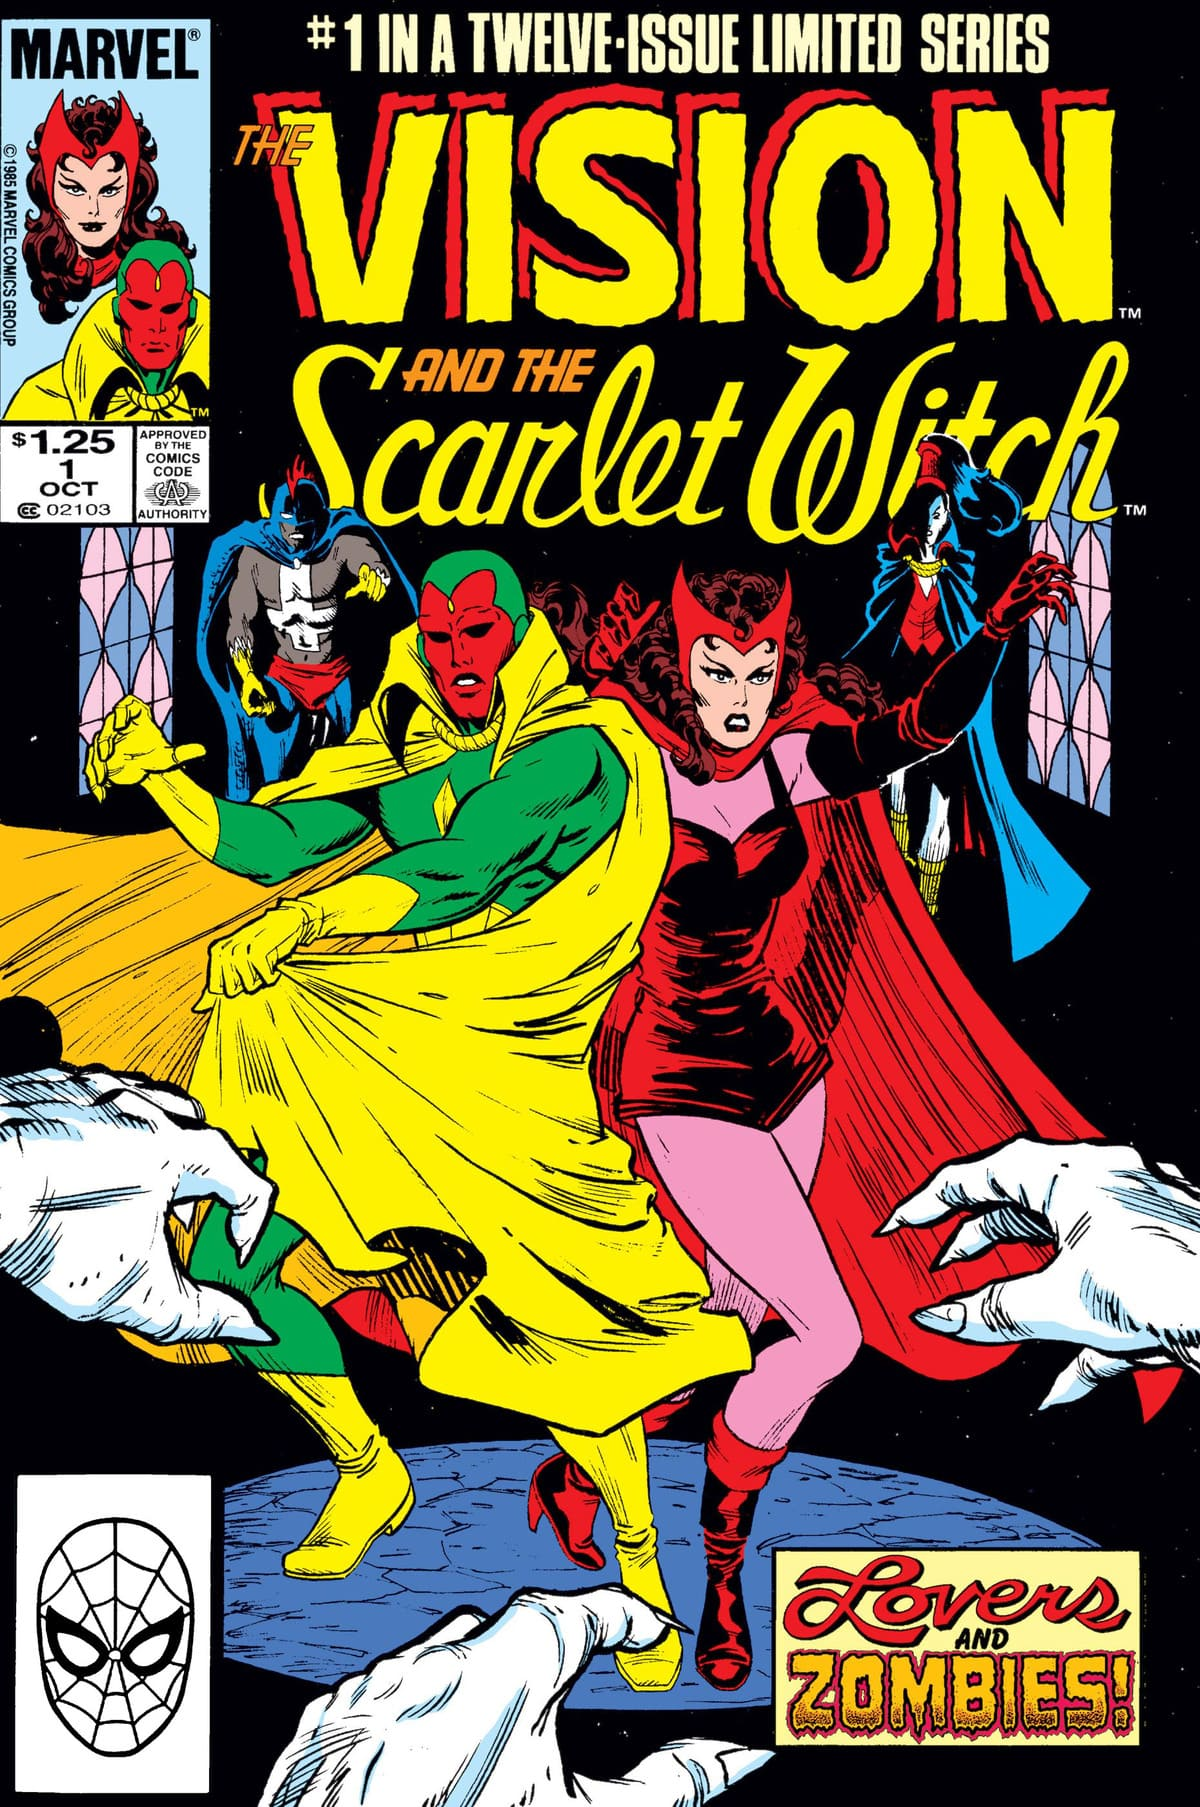 Vision and the Scarlet Witch Vol 2 #1